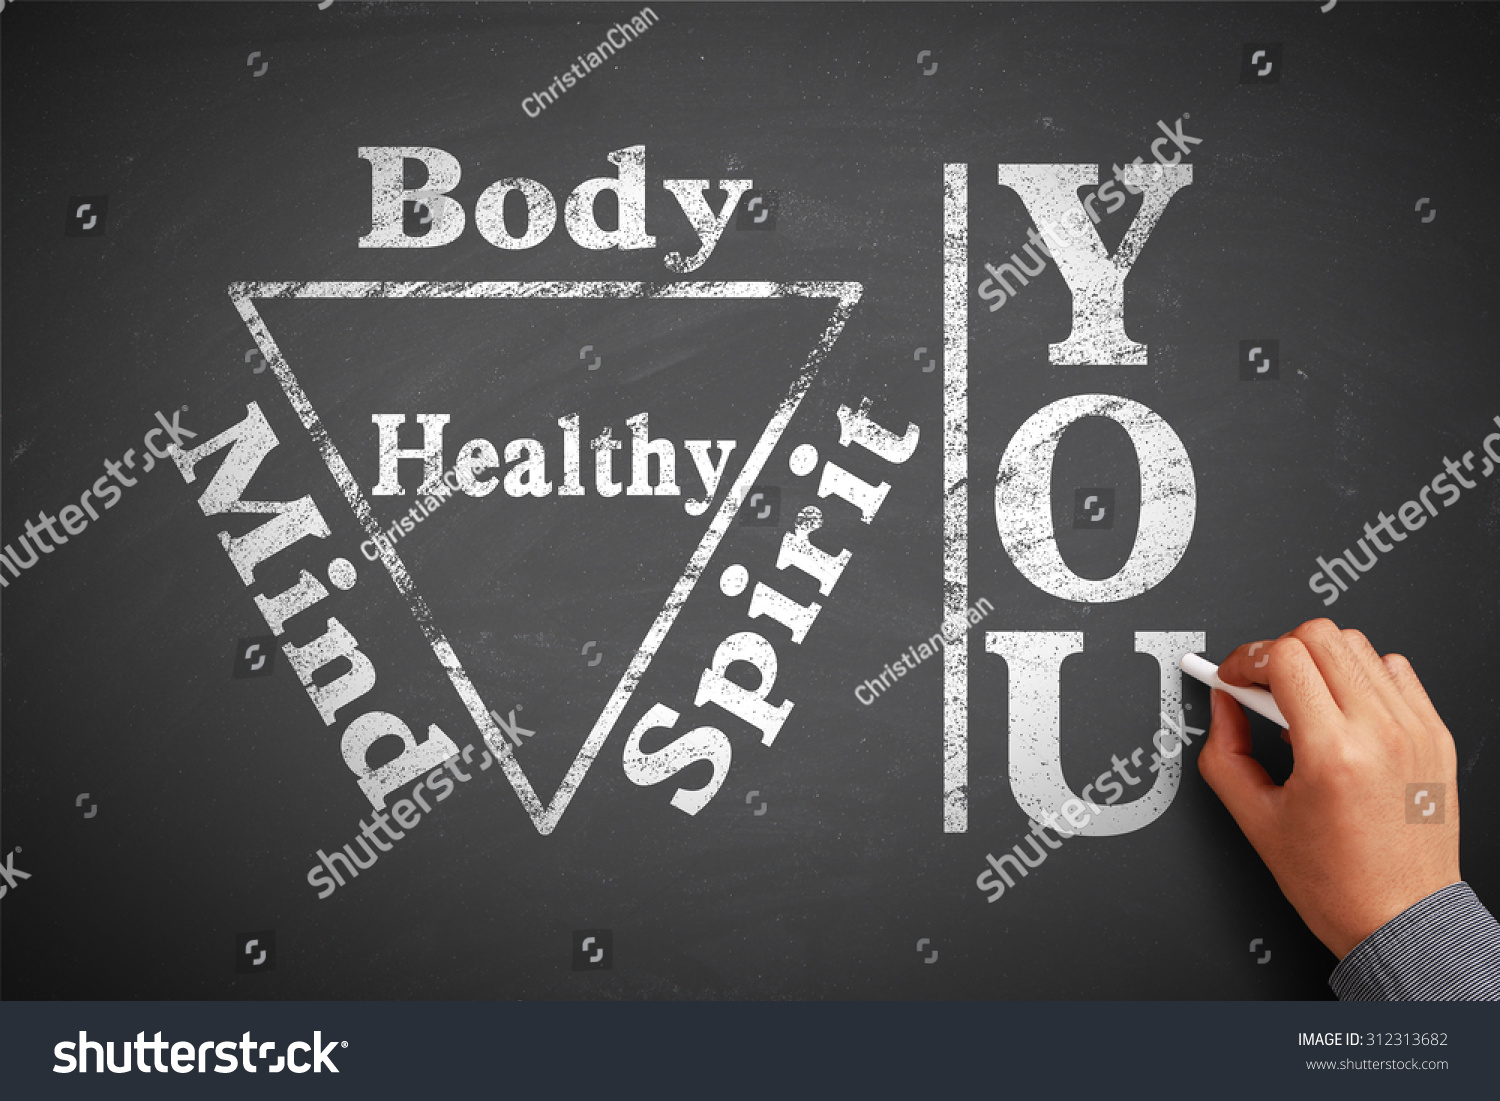 Exercise the Mind, Body, and Soul Essay